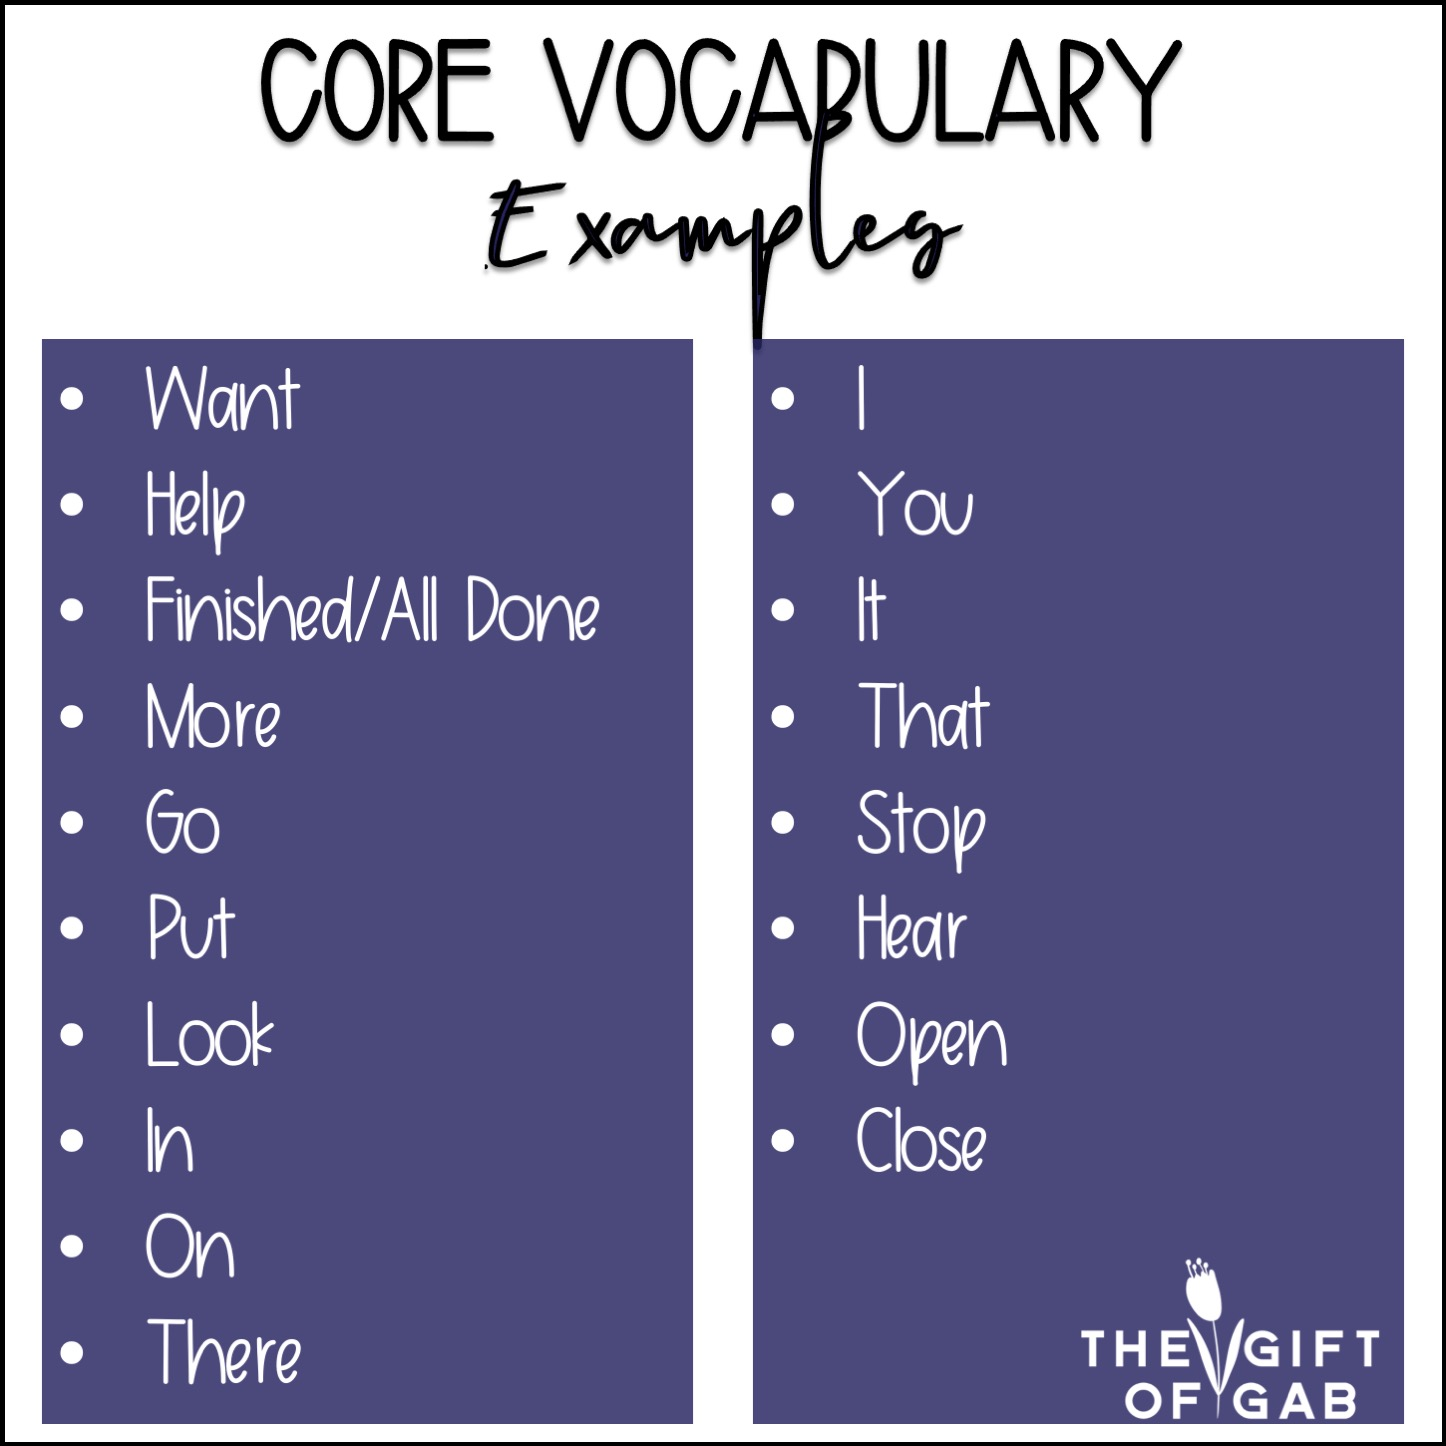 This is a list of core vocabulary word examples for speech therapy